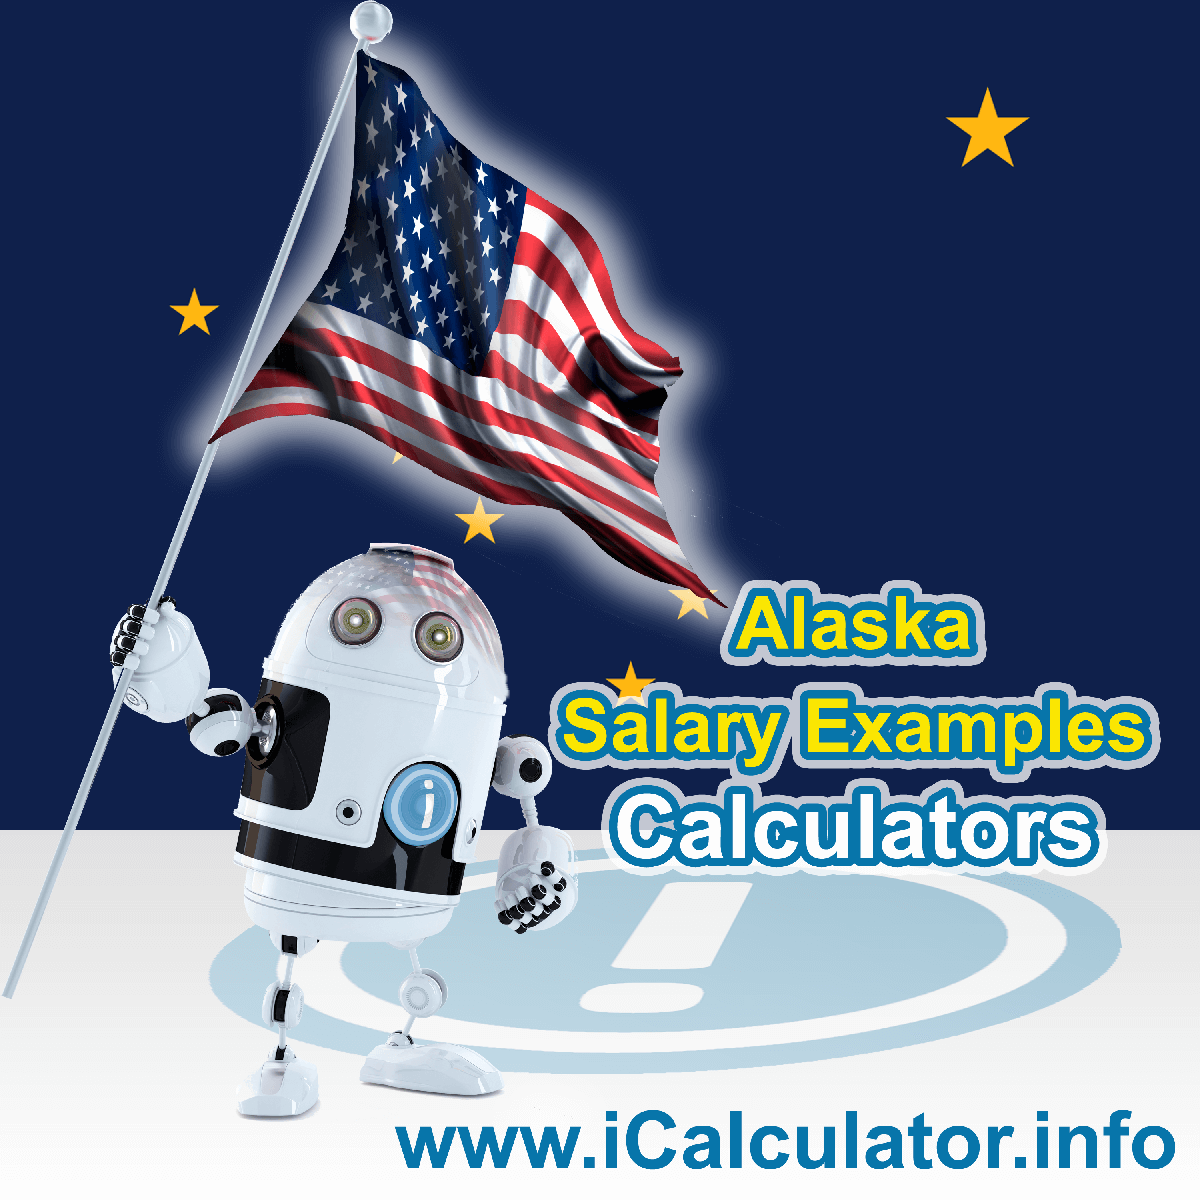 Alaska Salary Example for $70.00 in 2020 | iCalculator | $70.00 salary example for employee and employer paying Alaska State tincome taxes. Detailed salary after tax calculation including Alaska State Tax, Federal State Tax, Medicare Deductions, Social Security, Capital Gains and other income tax and salary deductions complete with supporting Alaska state tax tables